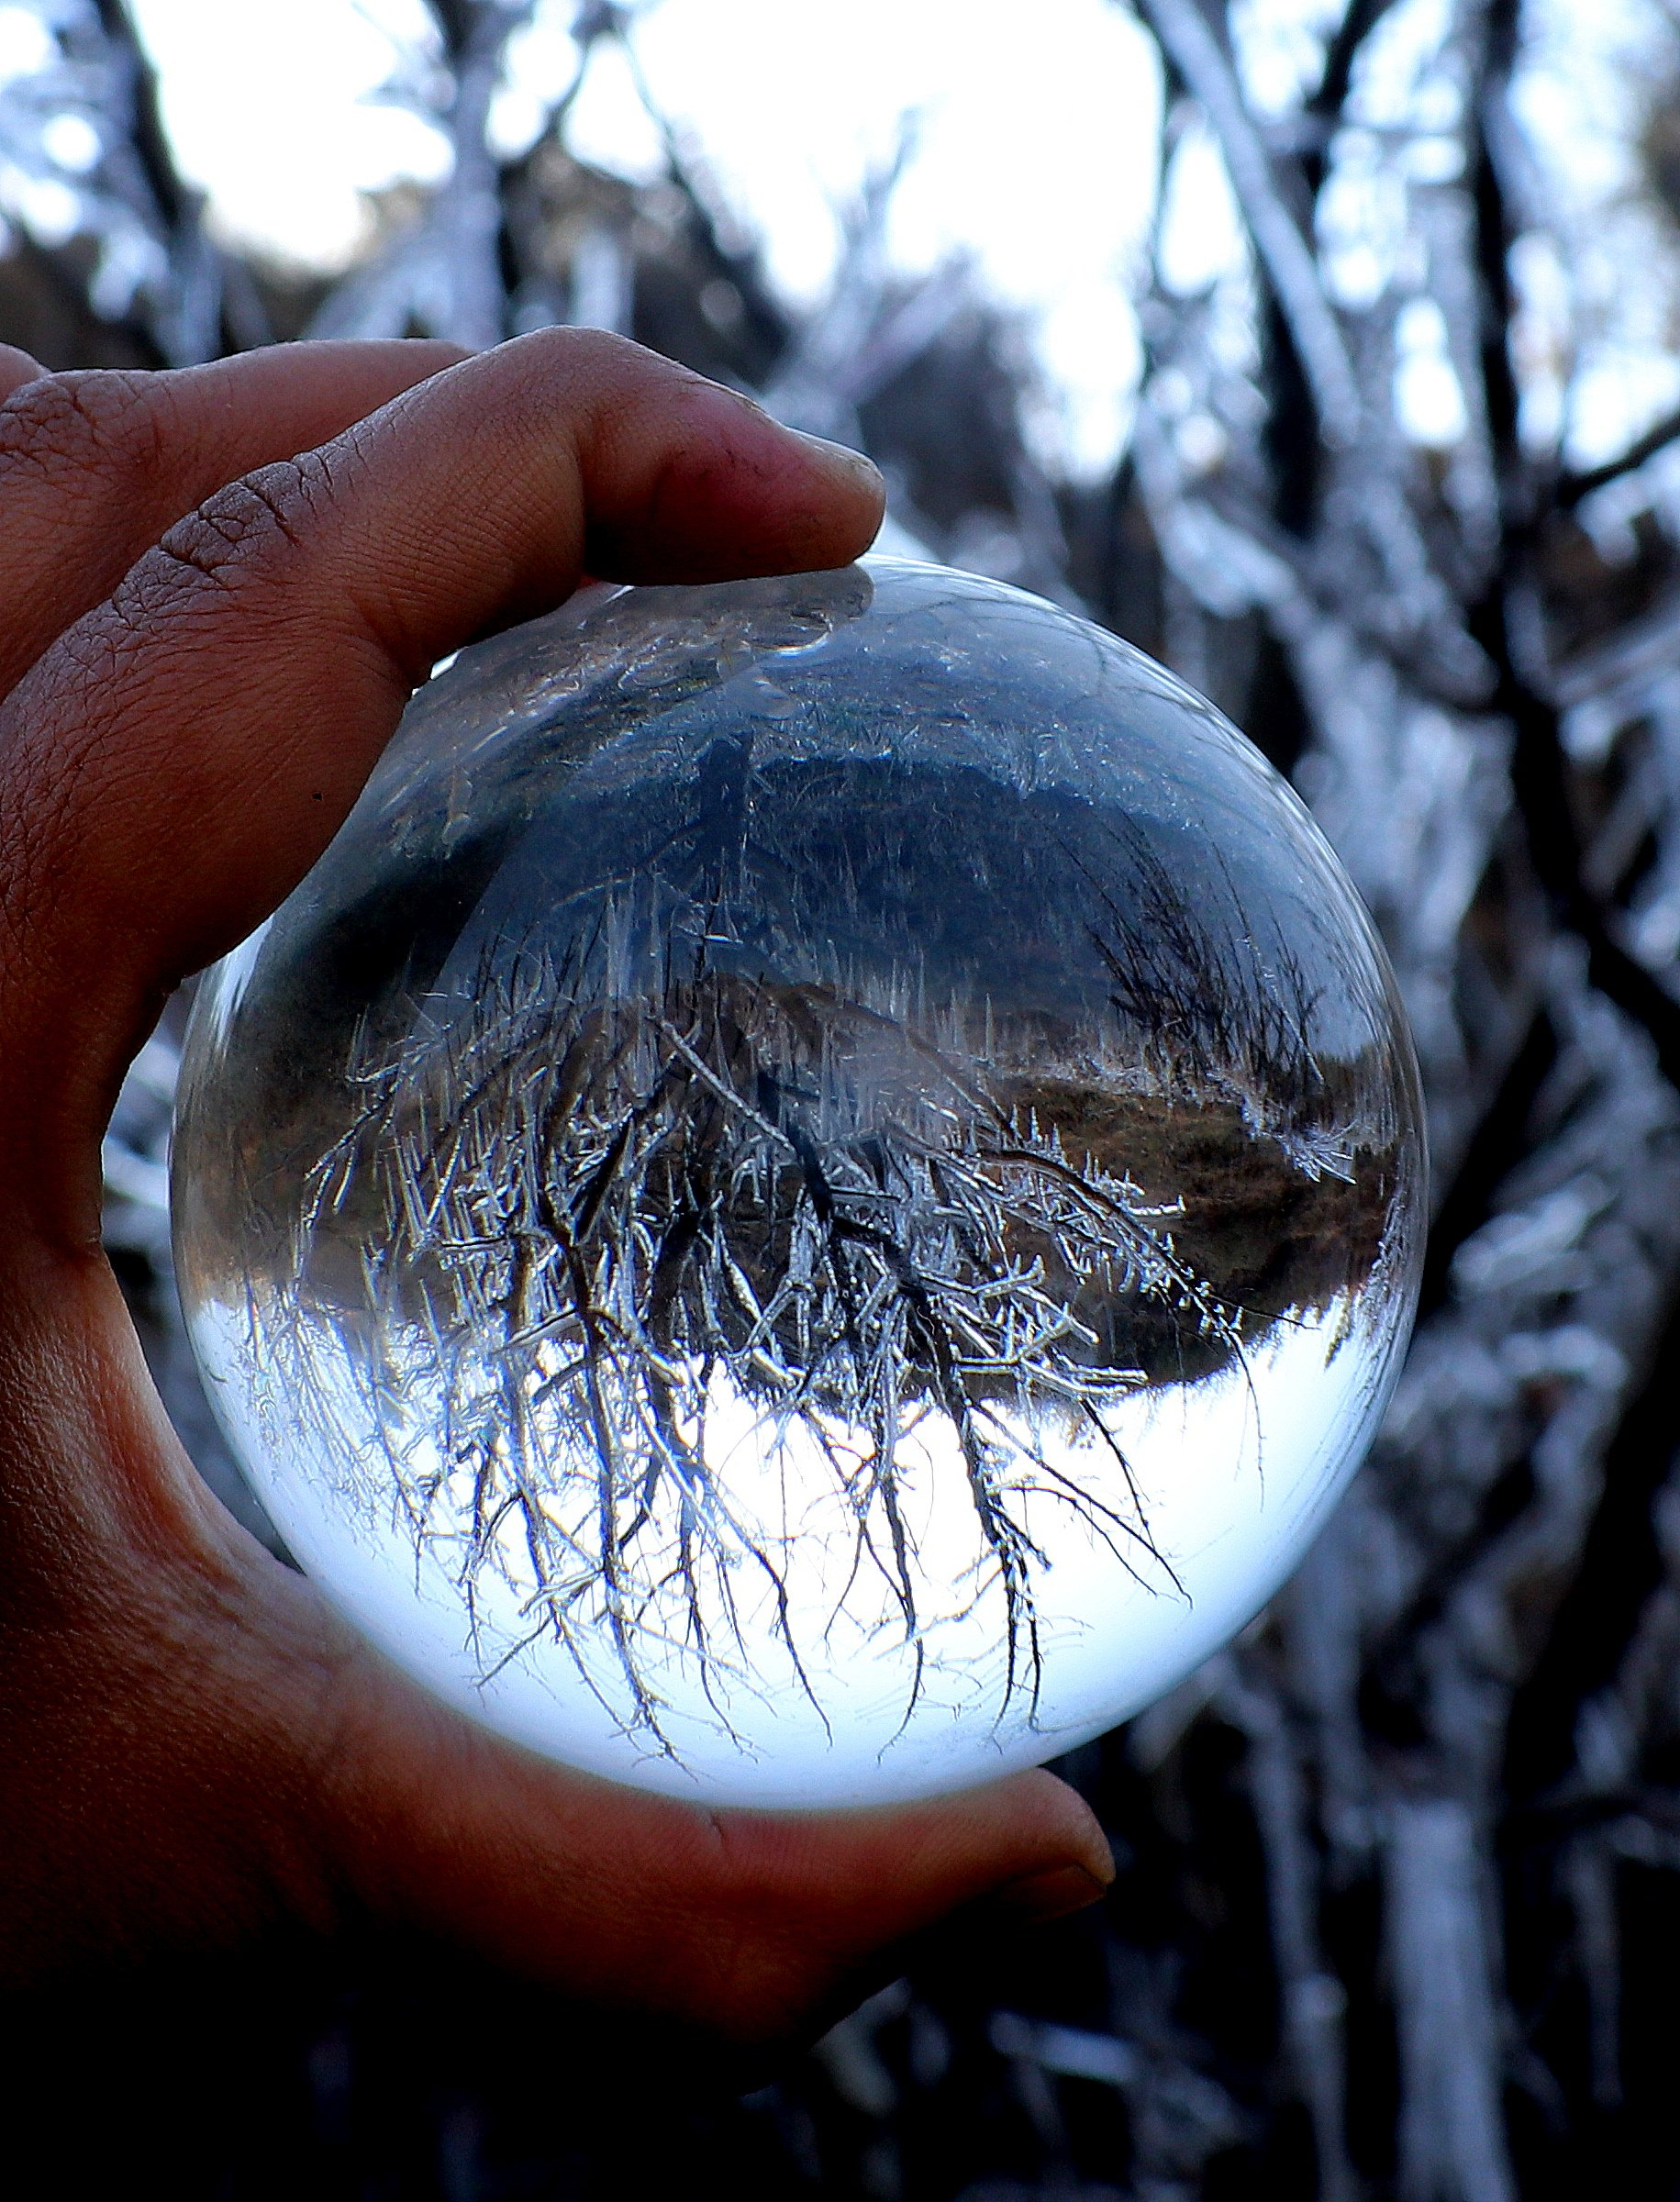 Trees reflection on Crystal ball